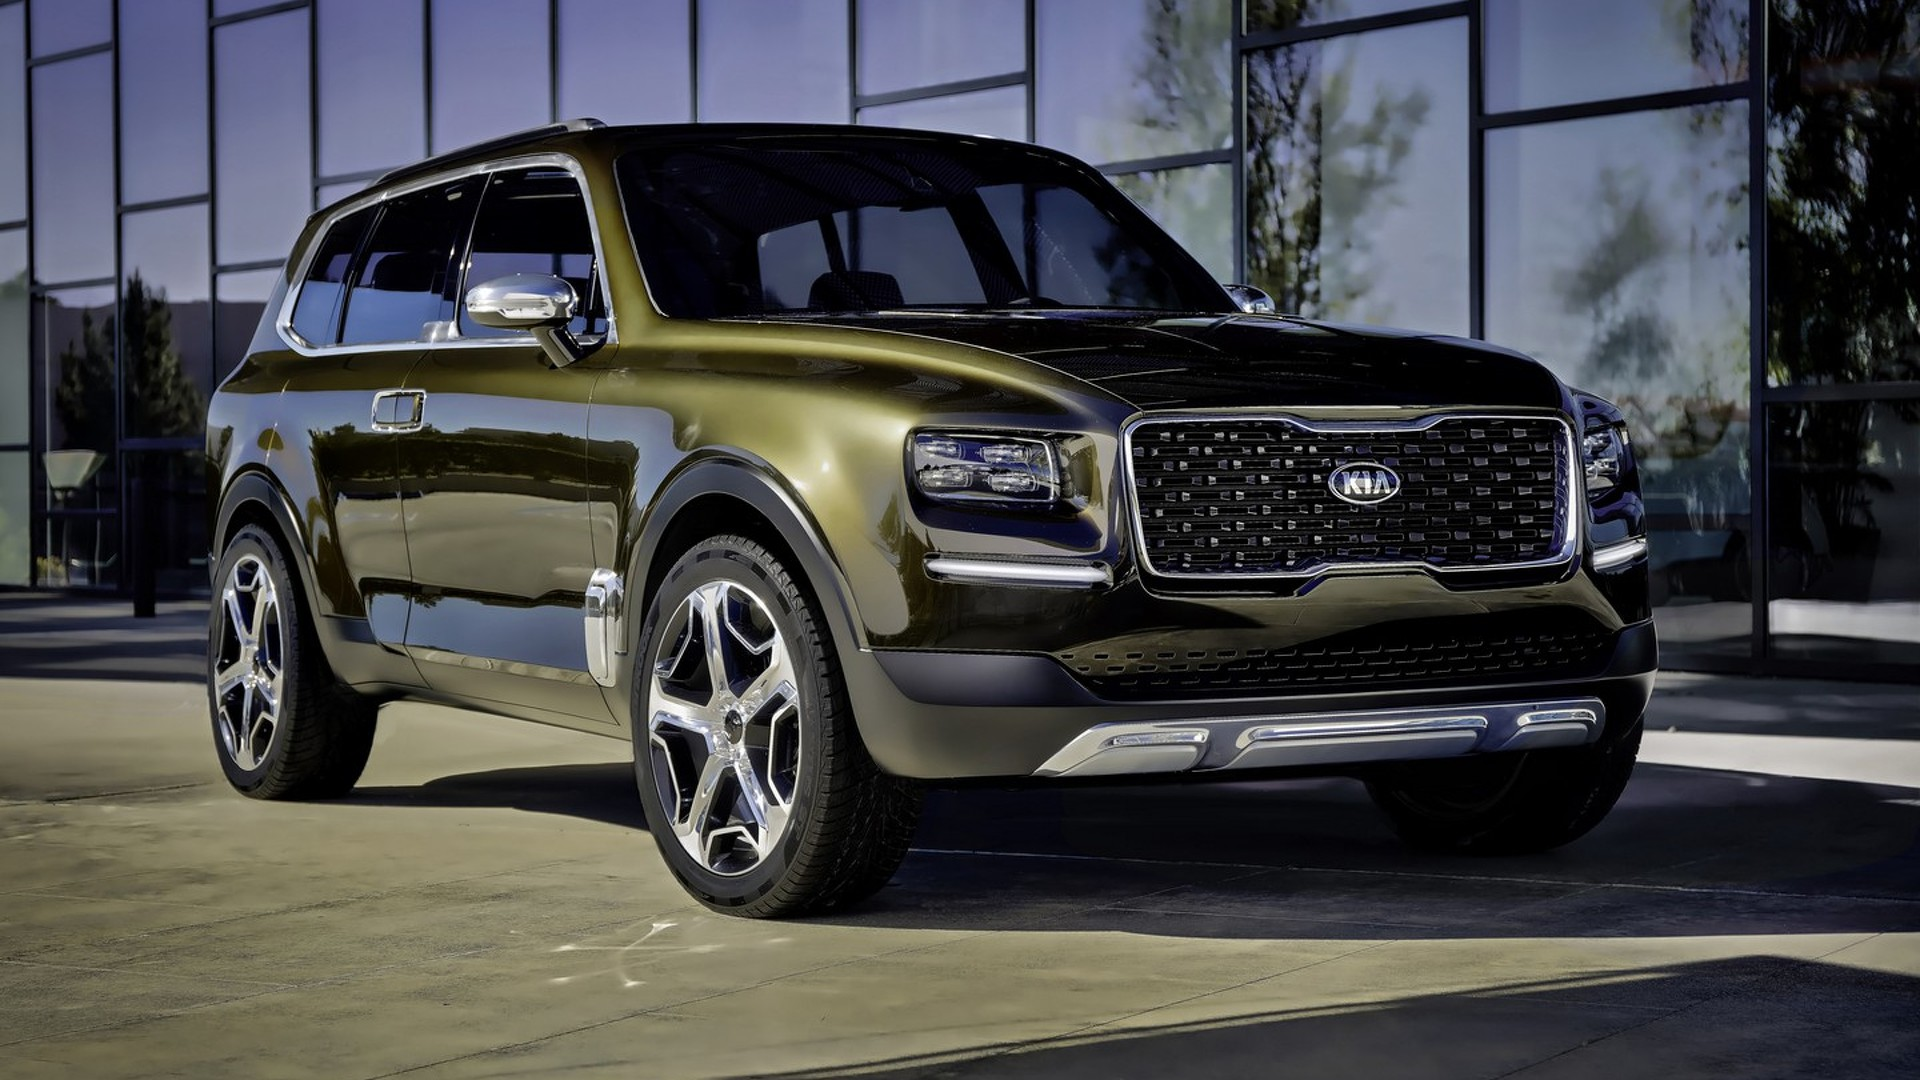 35 All New Kia Large Suv 2020 Redesign